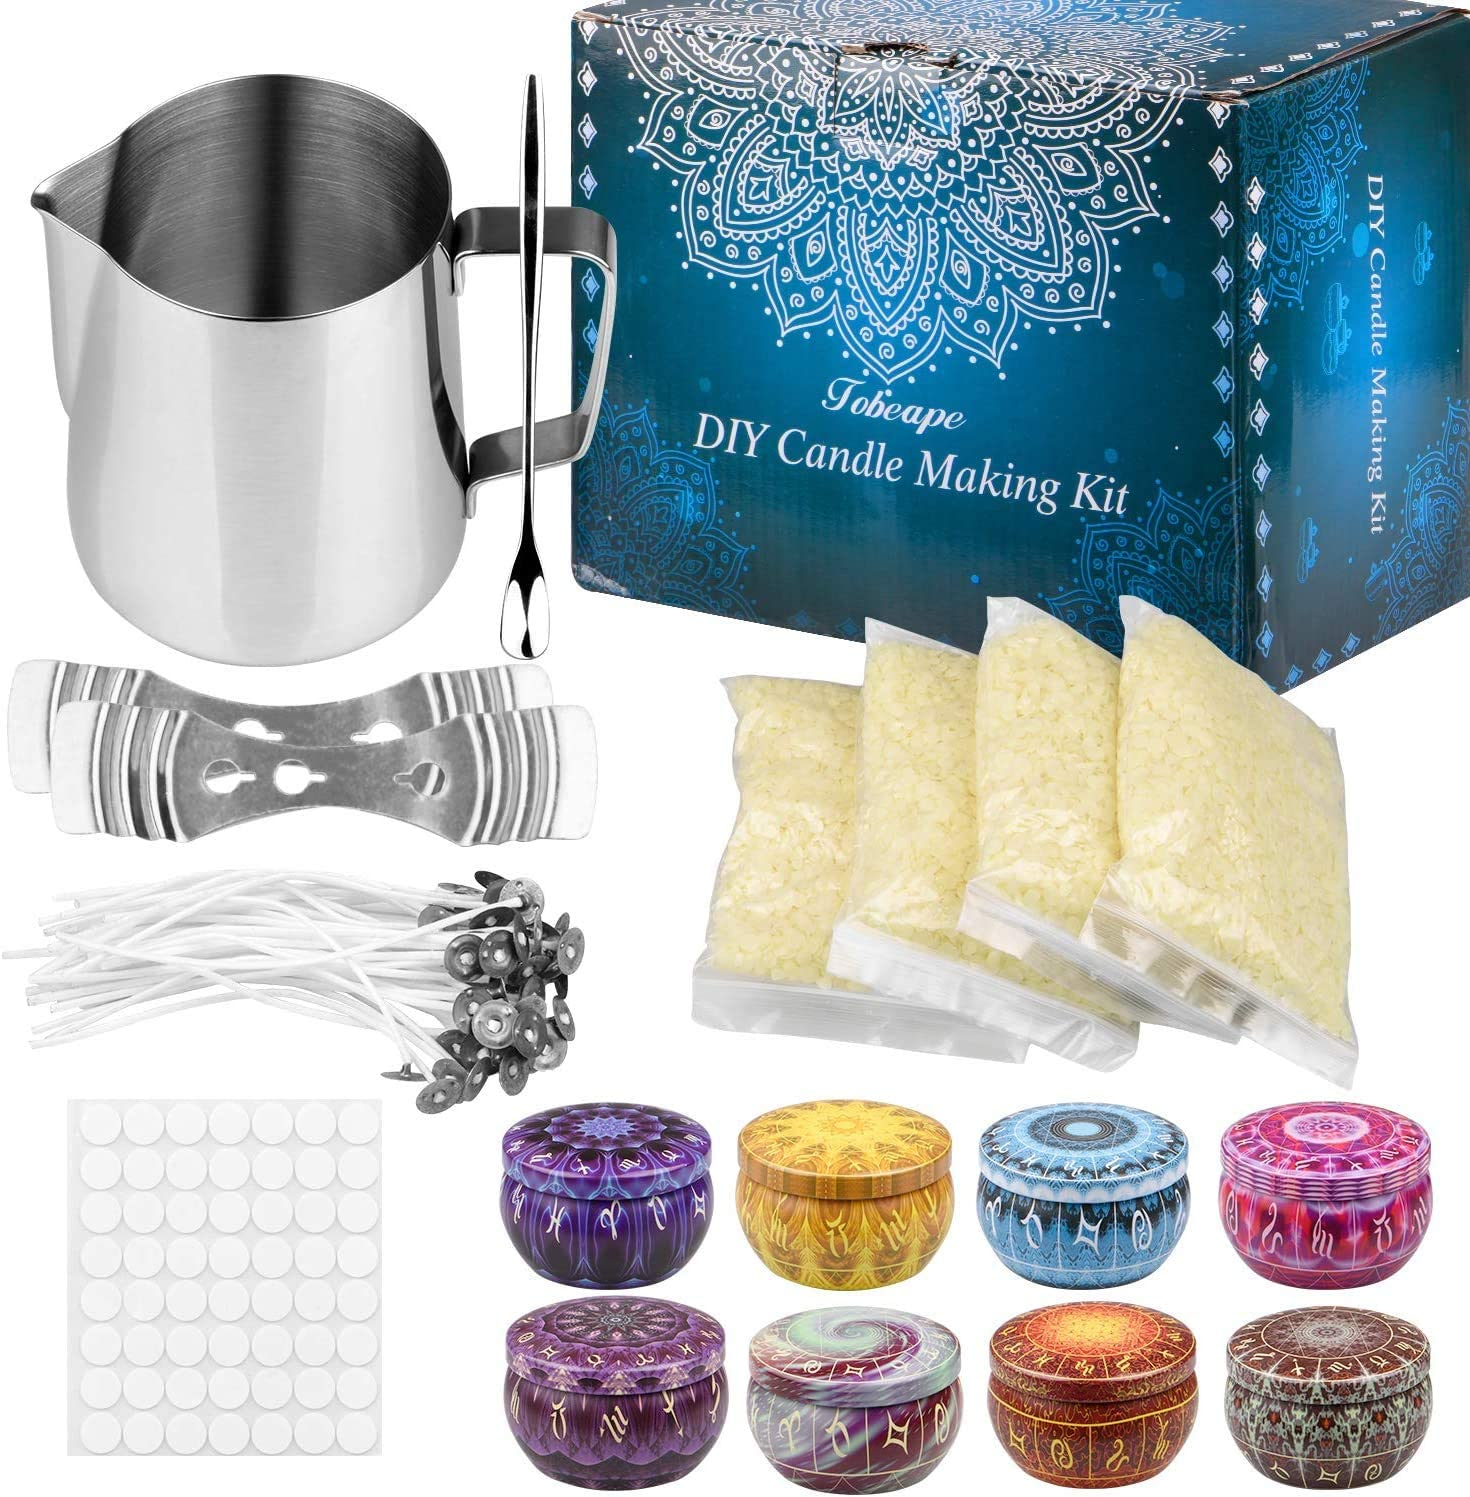 4 Pack Beeswax Beeswax DIY Candle Craft Tools Including with 1 Candle Make Pouring Pot 8 Candle Tins 50 Candle Wicks 56 Wicks Sticker Candle Making Kit Supplies